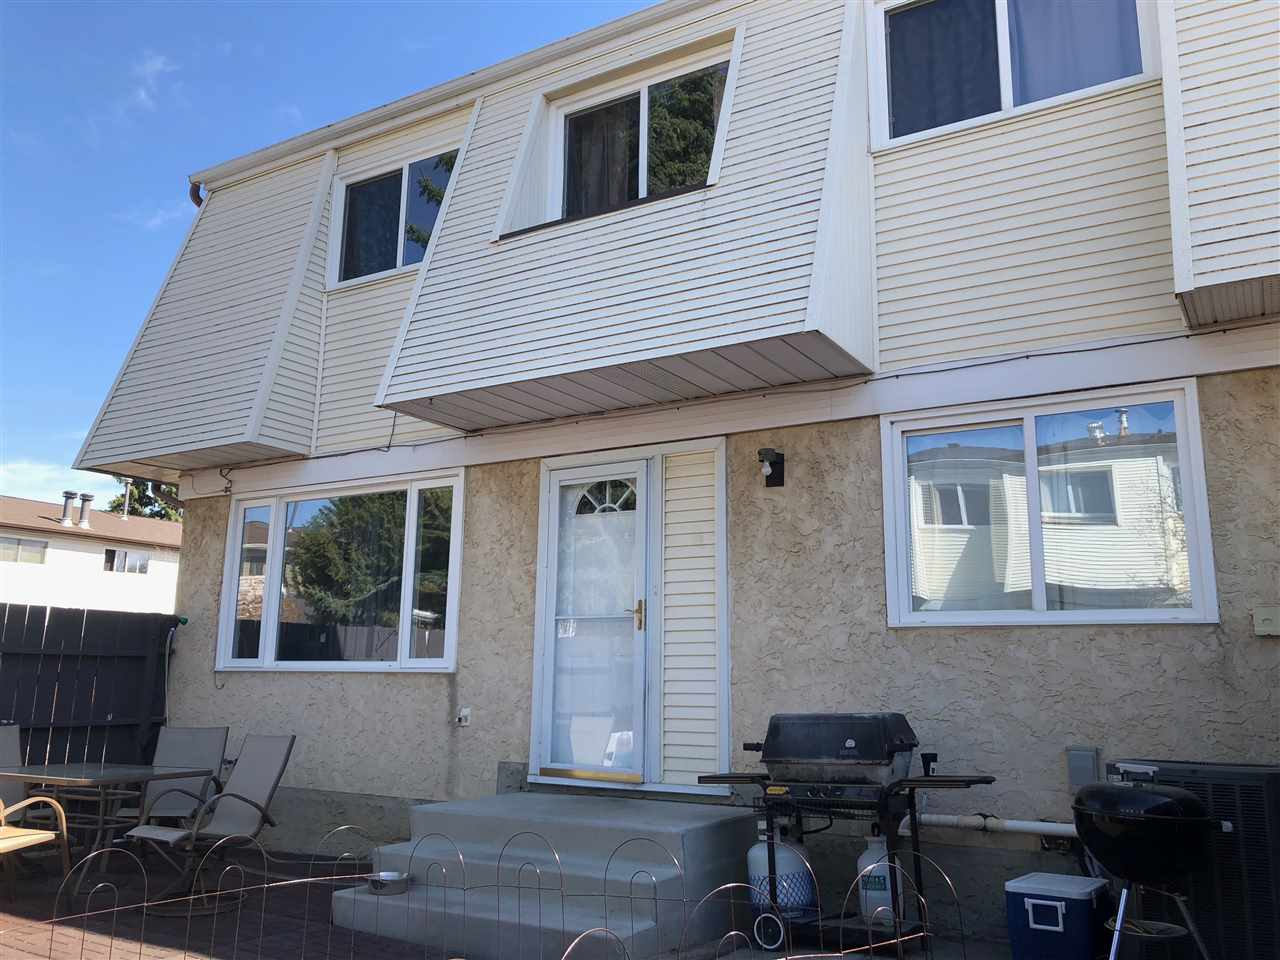 Main Photo: 30 650 Grandin Drive: Morinville Townhouse for sale : MLS®# E4103820